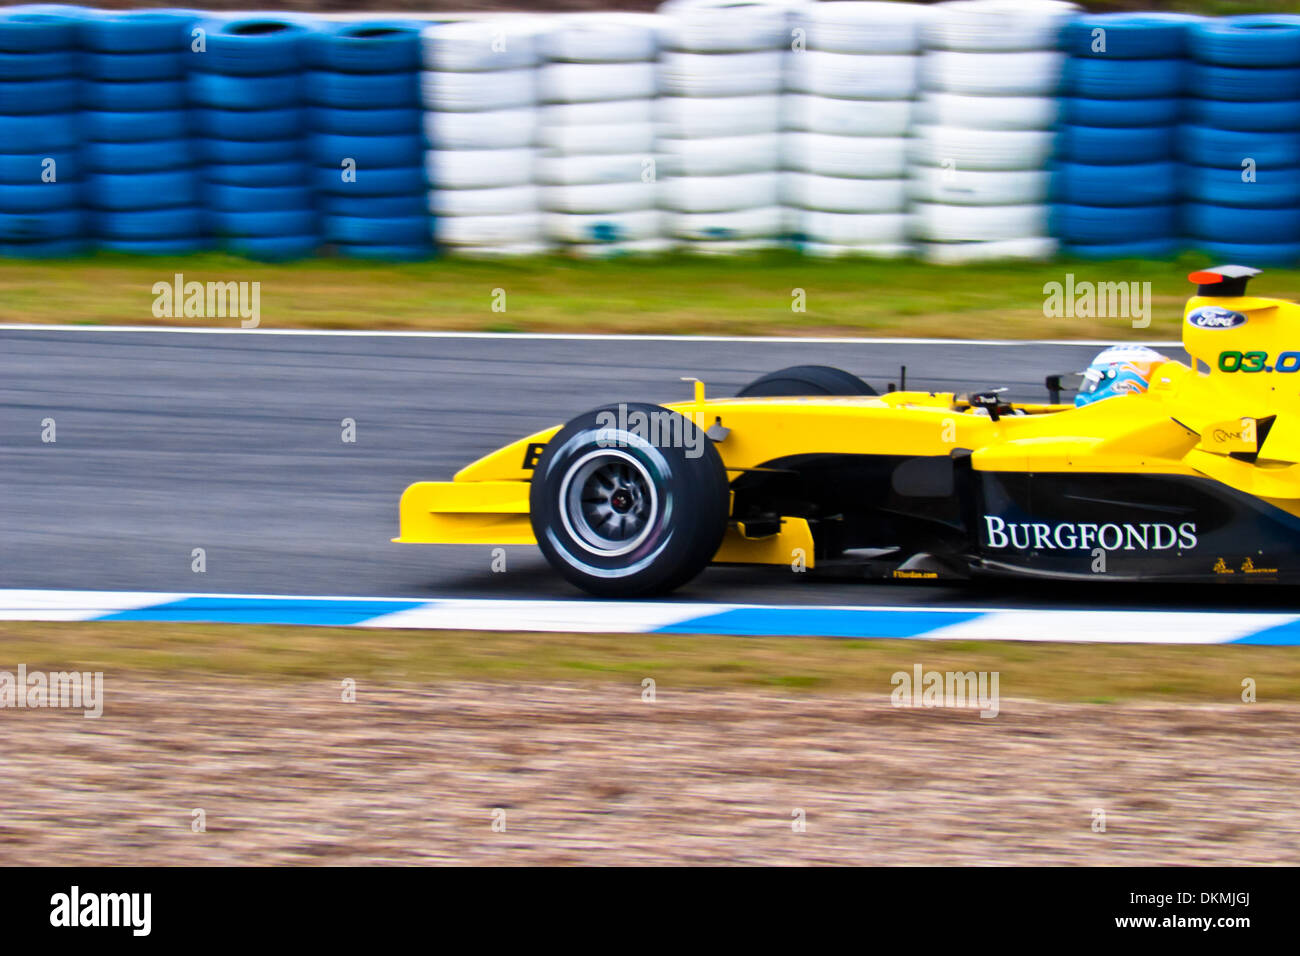 Robert Doornbos Of Jordan F1 Races During A Training Session Stock Photo Alamy